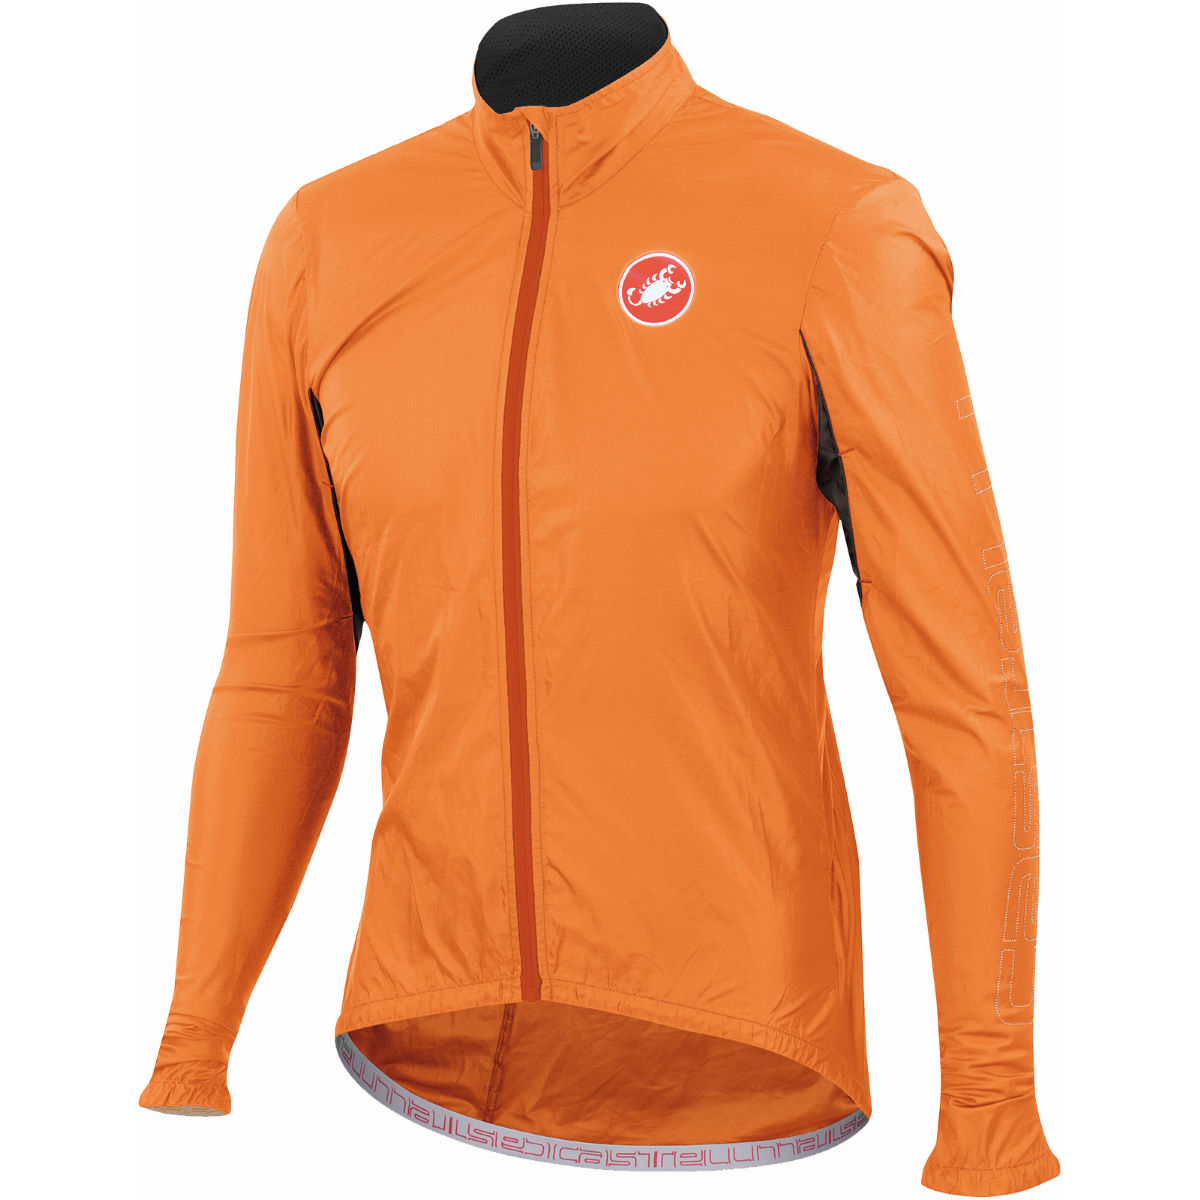 Veste Castelli Velo - S Orange Coupe-vents vélo